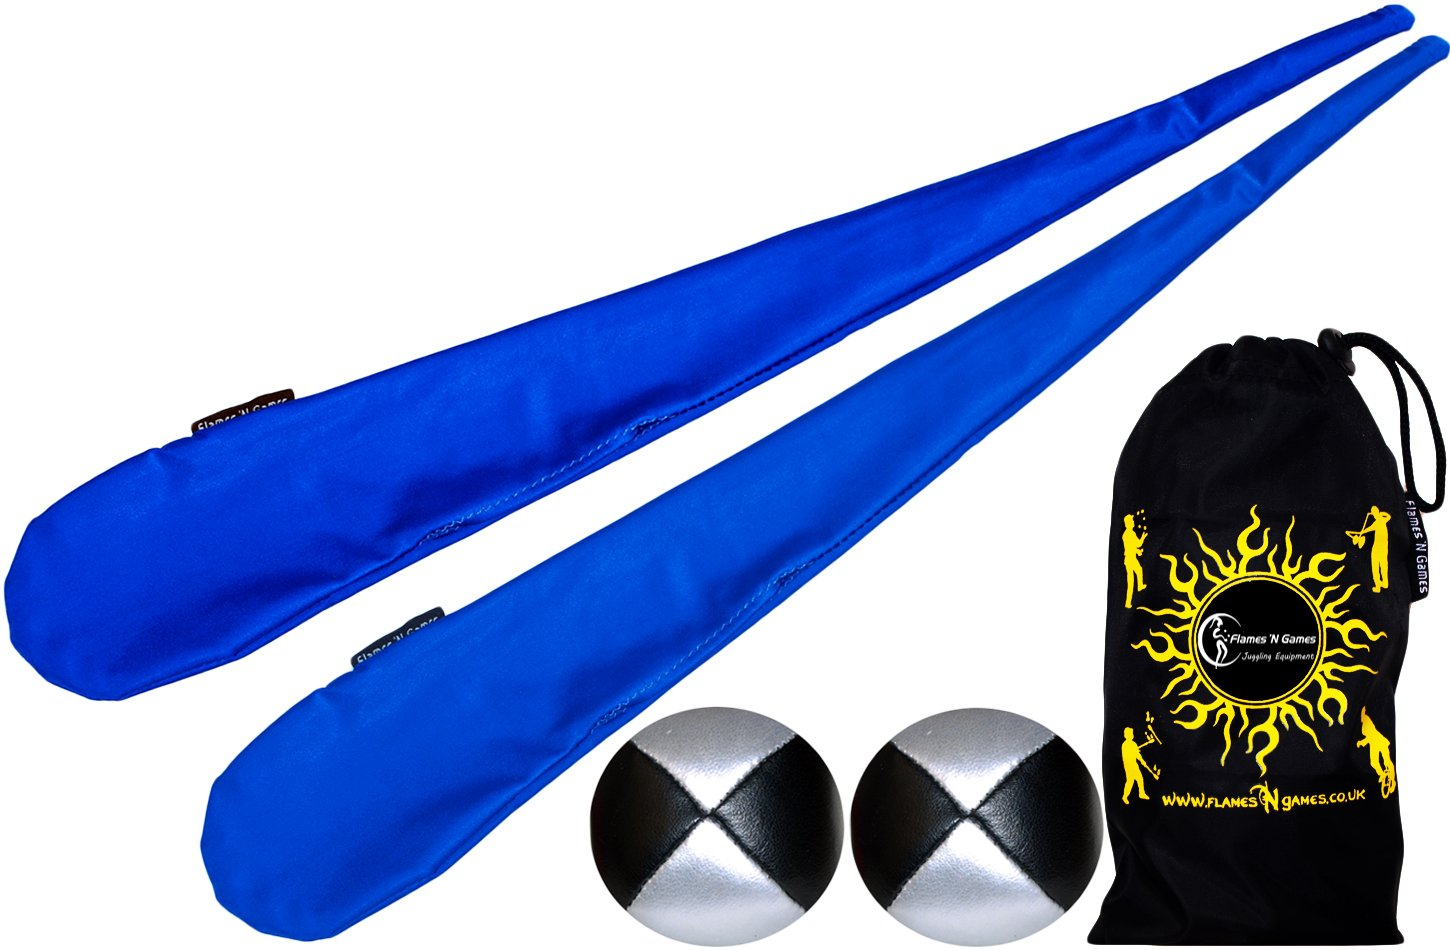 Flames N Games Sock Poi Set BLUE Pair of Quality Stretchy Lycra Spinning Poi Socks 2x90g Balls Travel Bag.